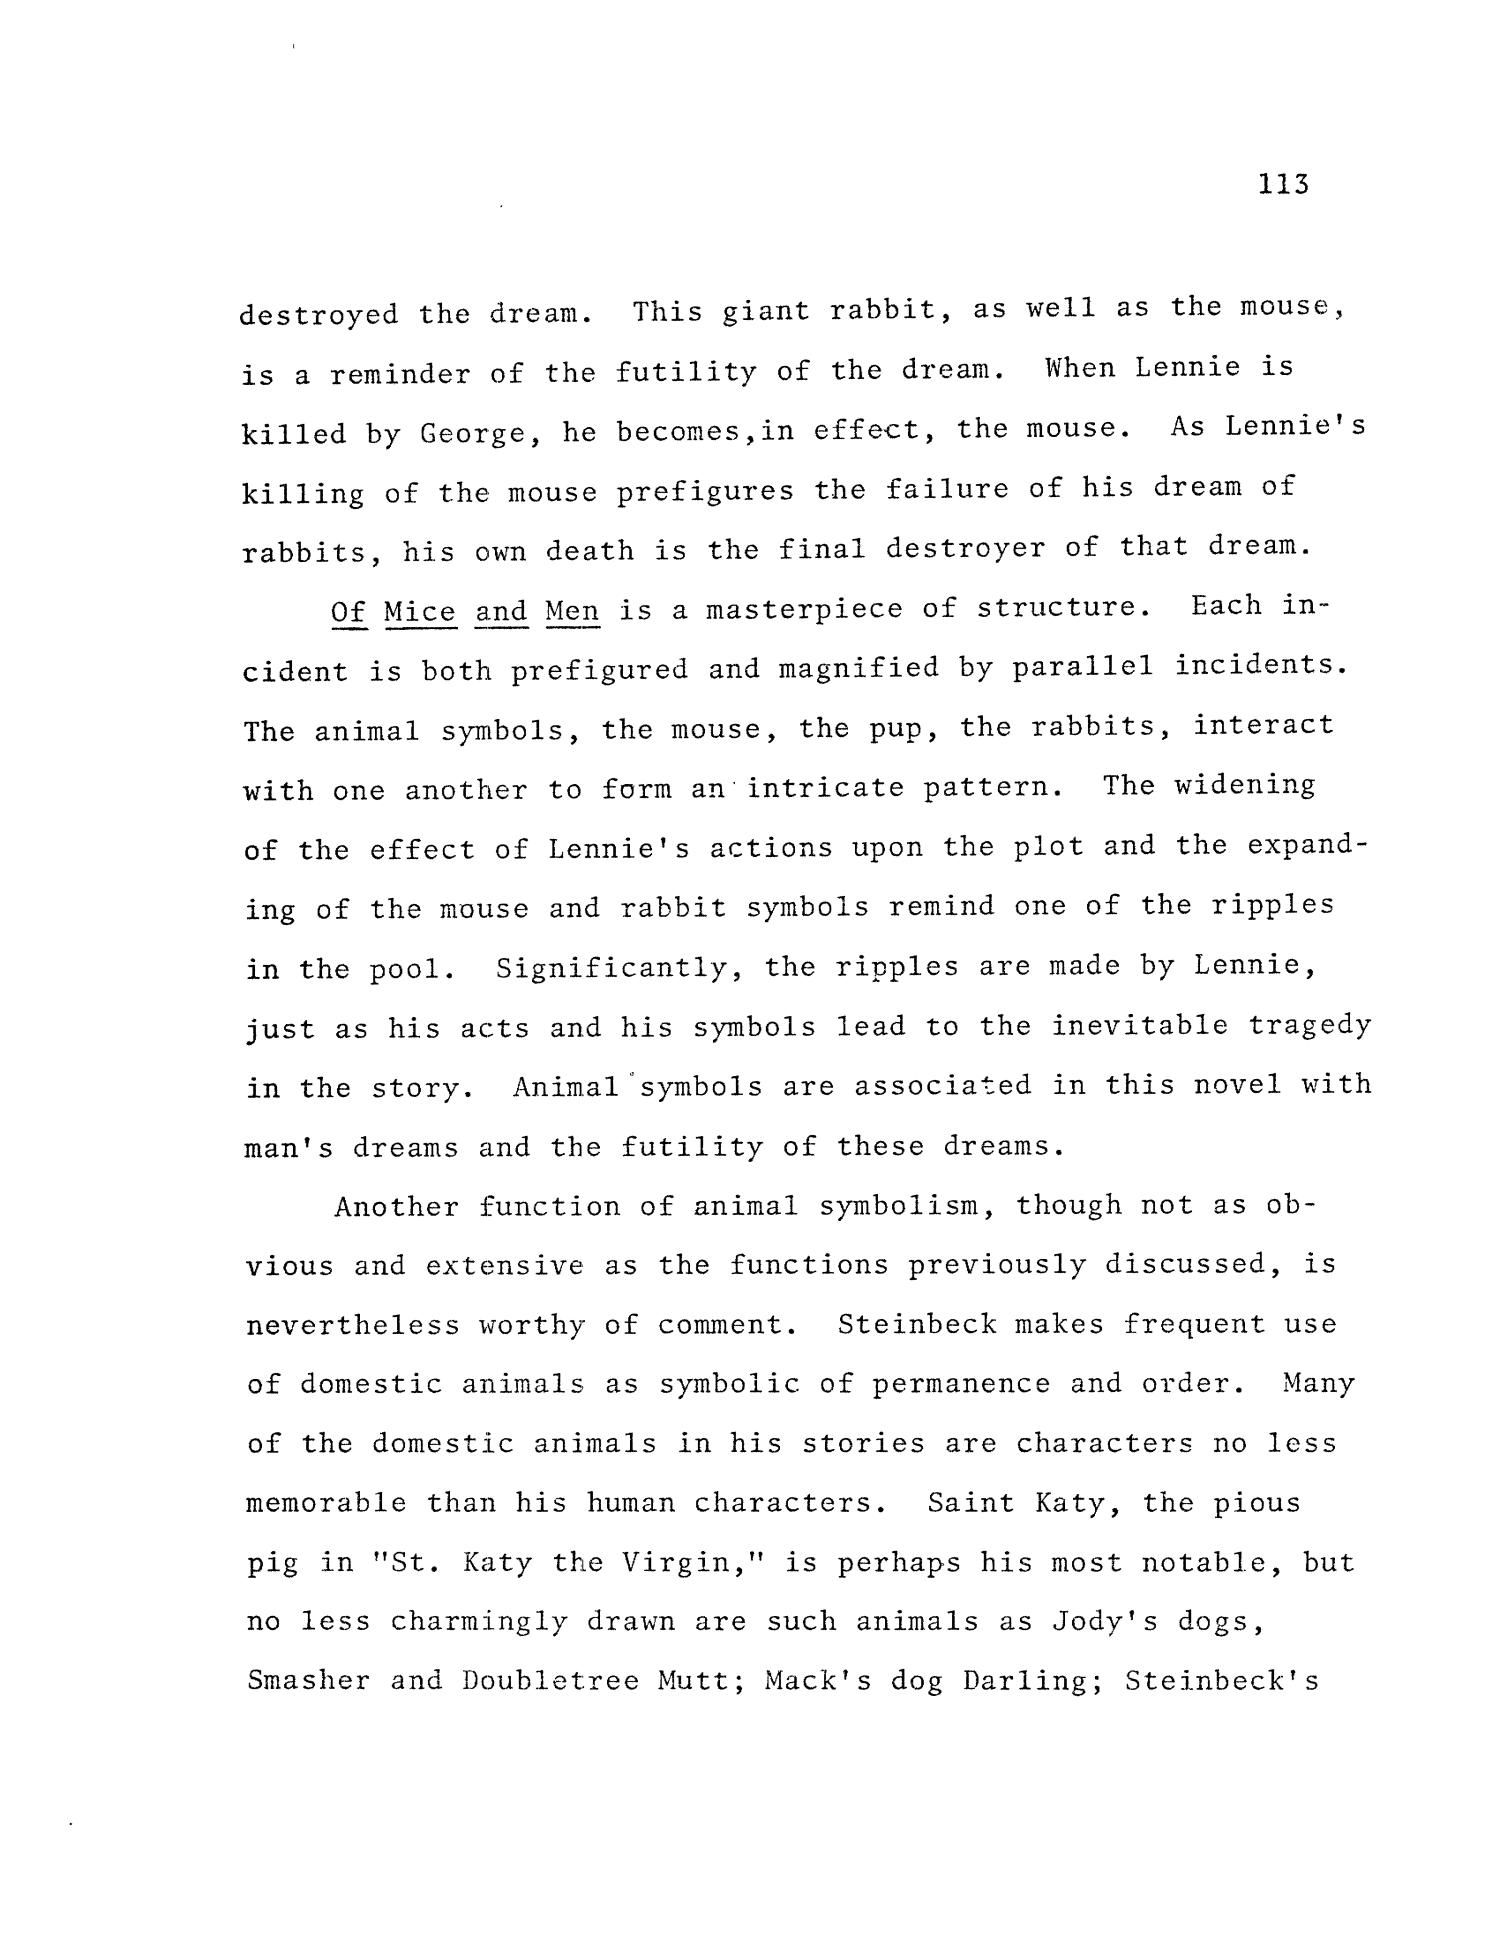 Nature symbolism in the fiction of john steinbeck page 113 nature symbolism in the fiction of john steinbeck page 113 digital library buycottarizona